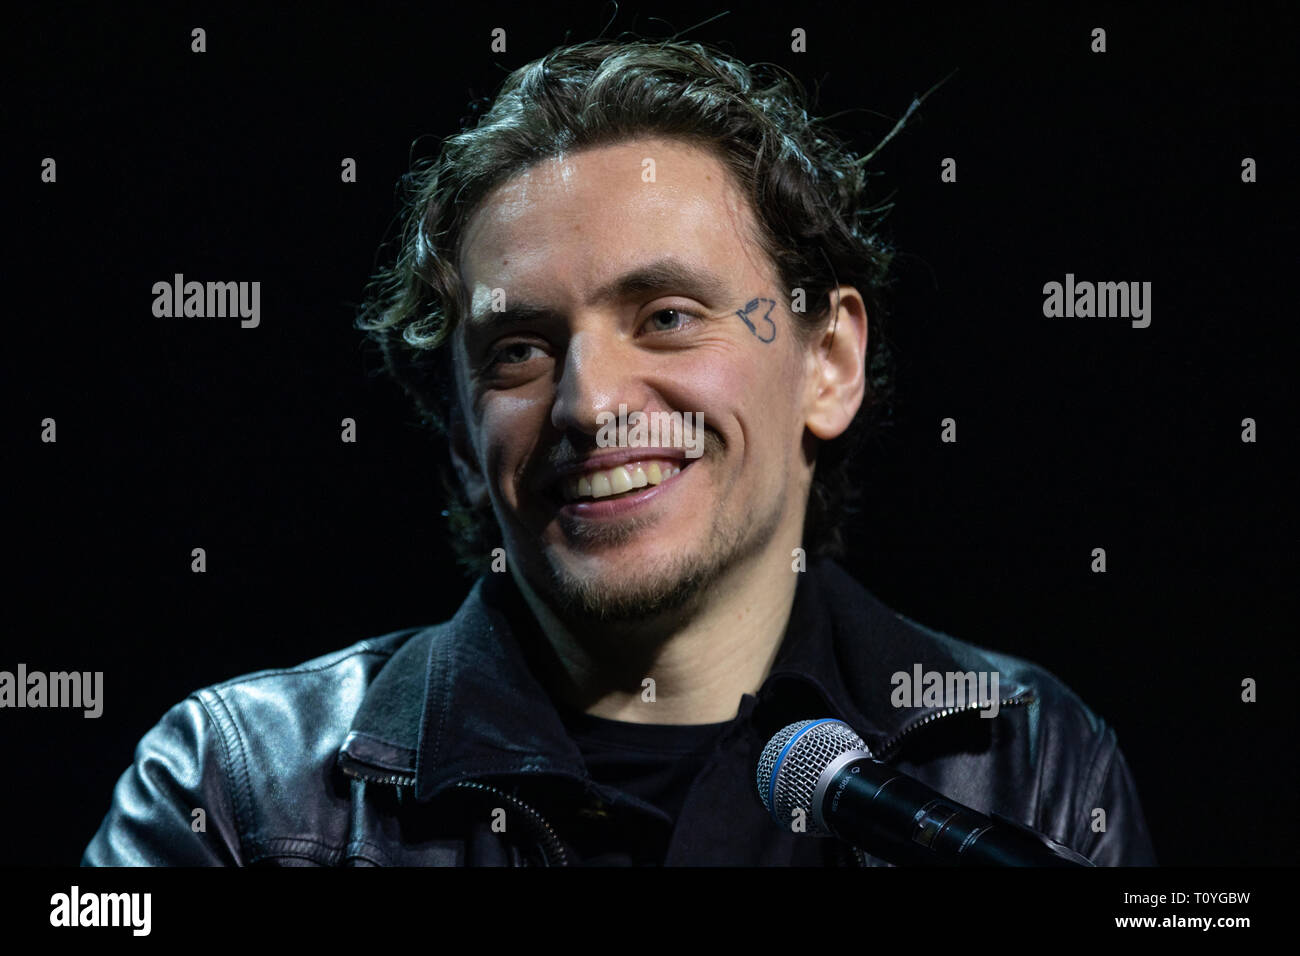 Moscow, Russia. 22nd Mar 2019. Ballet dancer Sergei Polunin at the 2019 Moscow Cultural Forum at the Manezh Central Exhibition Hall Credit: Nikolay Vinokurov/Alamy Live News - Stock Image